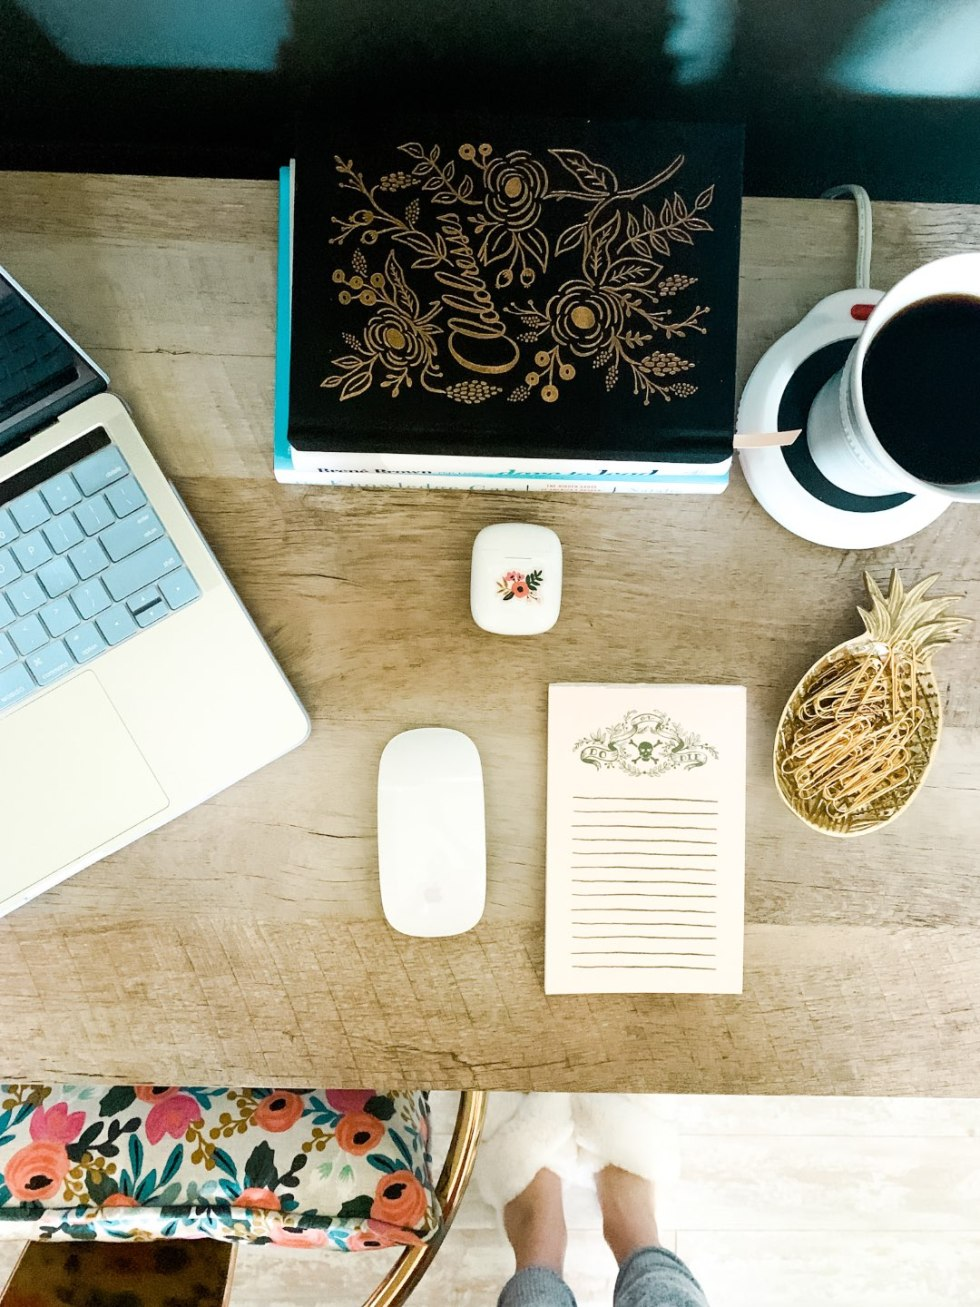 8 Items I am Loving for Working from Home - I'm Fixin' To - @mbg0112 | Work From Home Essentials by popular NC lifestyle blog, I'm Fixin To: image of a office desk with a laptop, candle warmer, pineapple trinket dish filled with gold paper clips, black address book, Rifle Paper Co. floral pillow, and floral note pad.